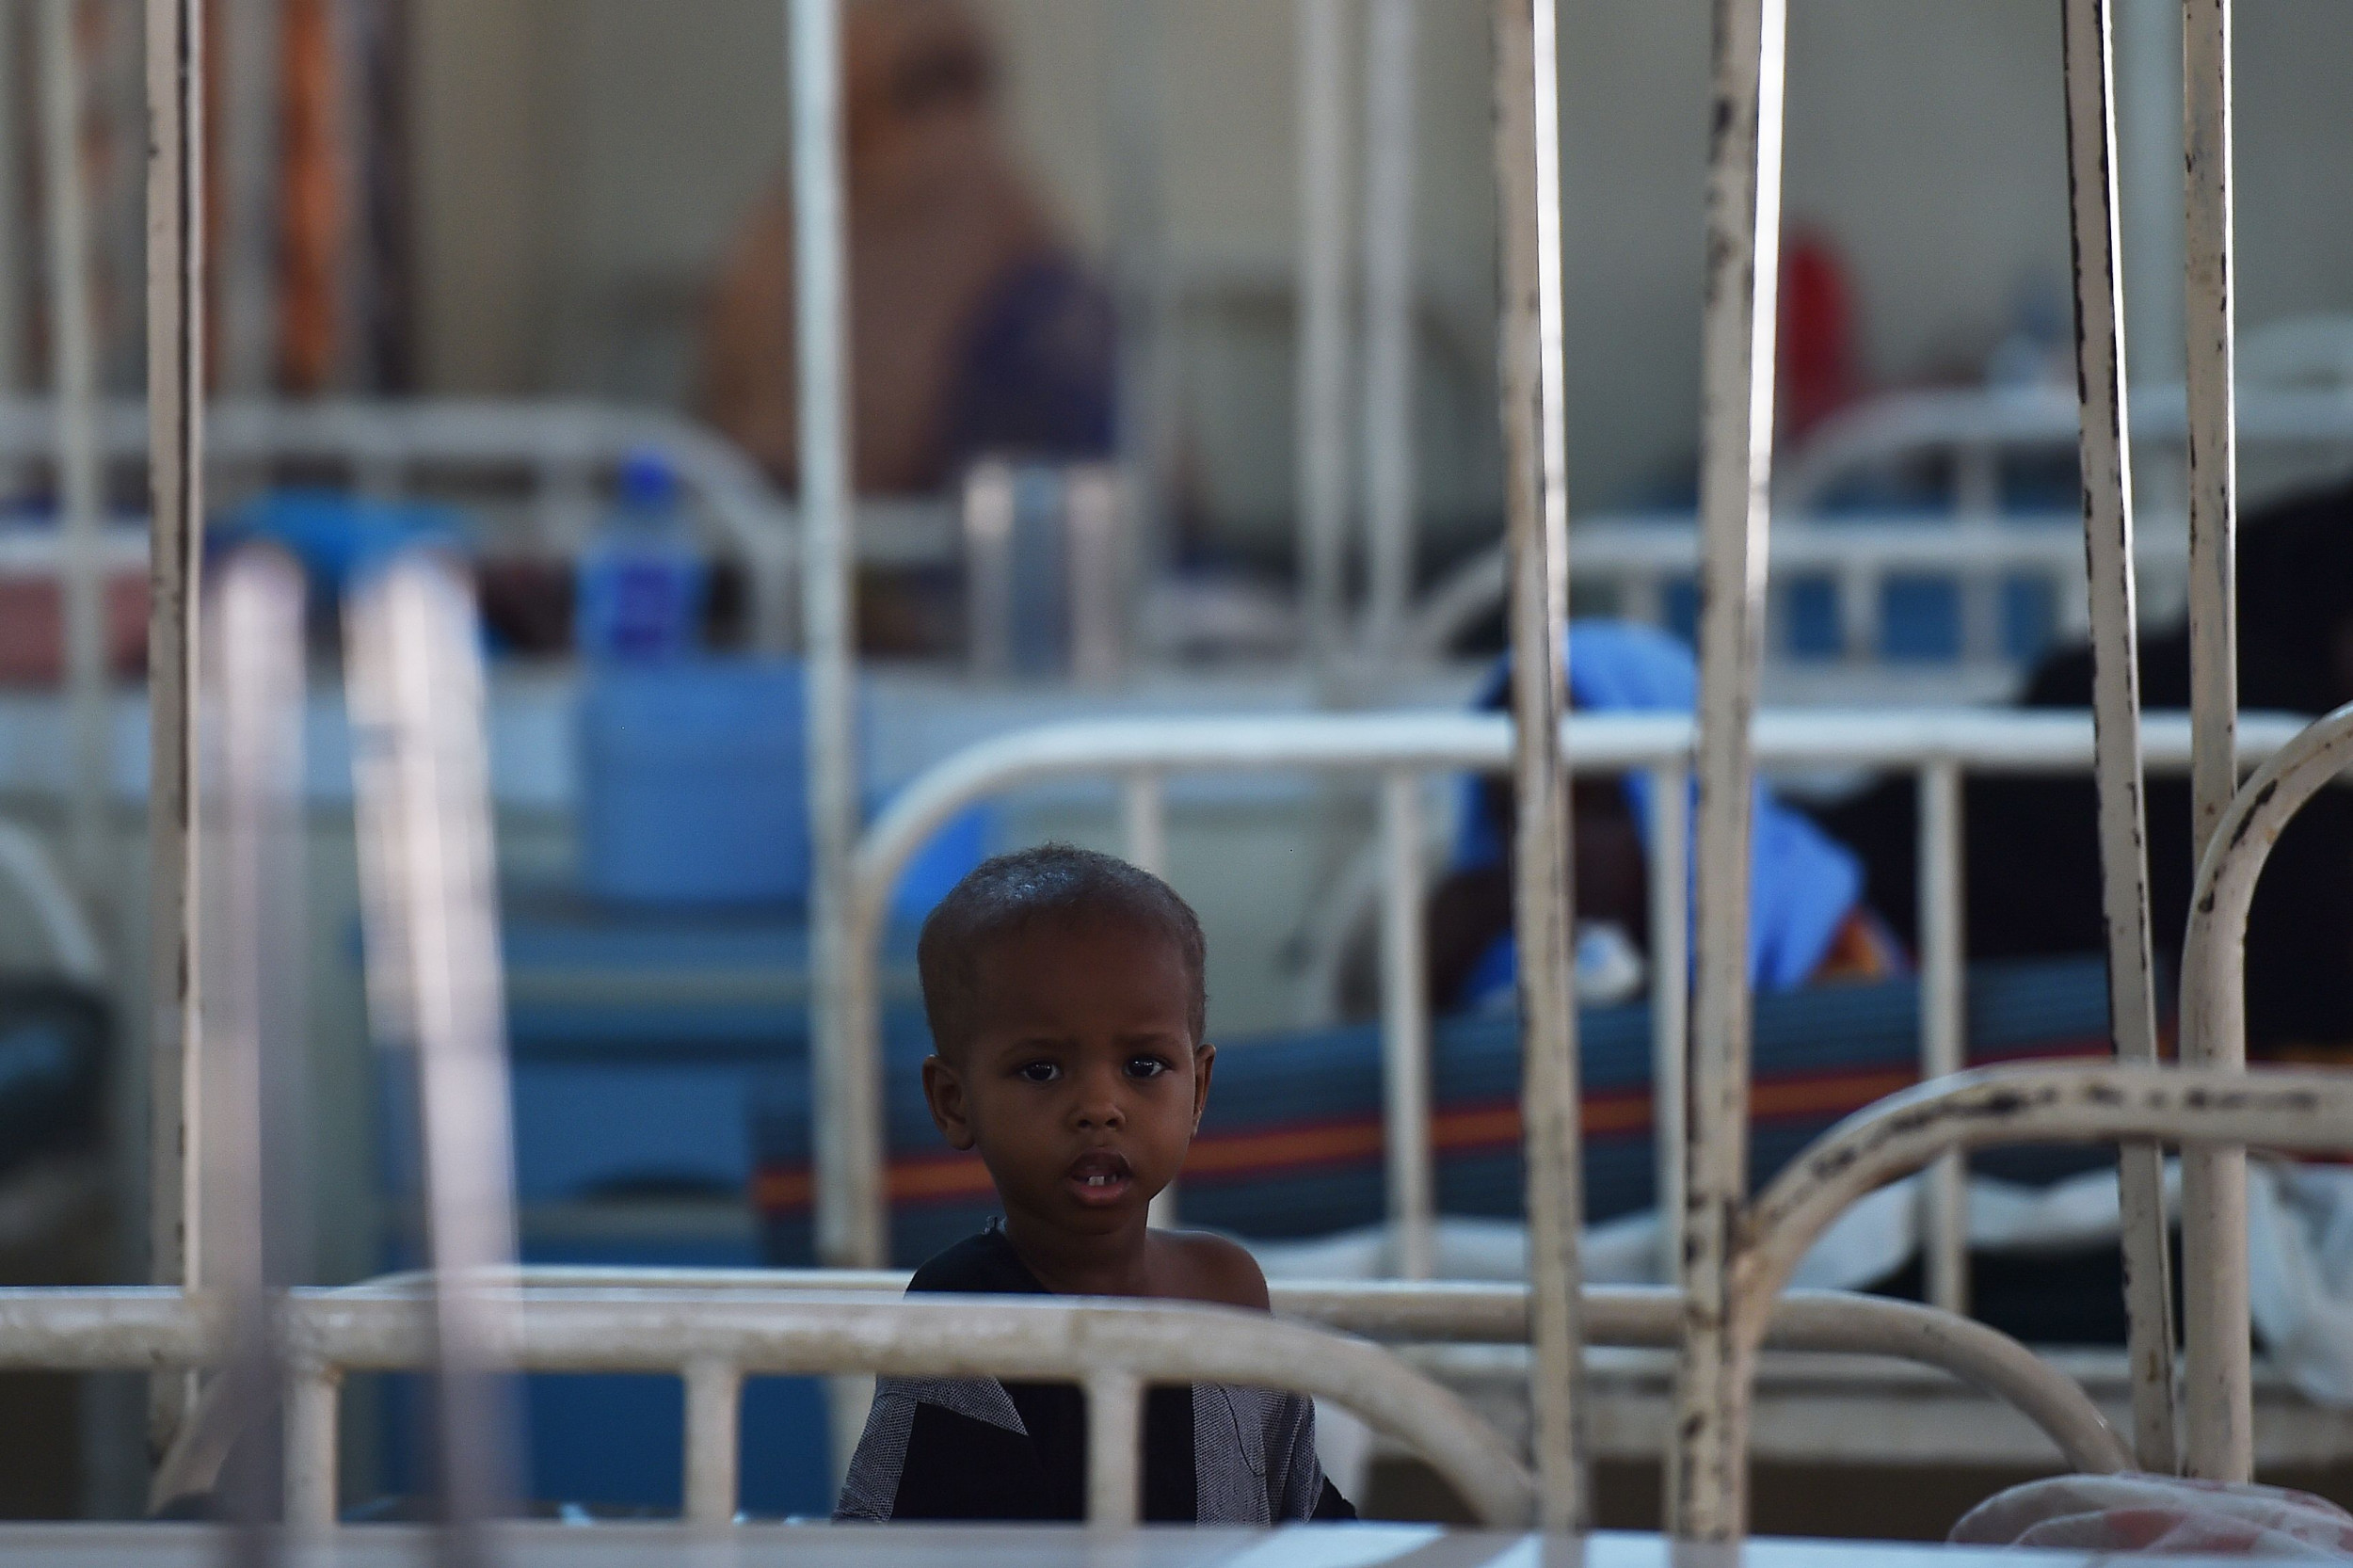 During difficult time, new hope emerges for malnourished children | Opinion